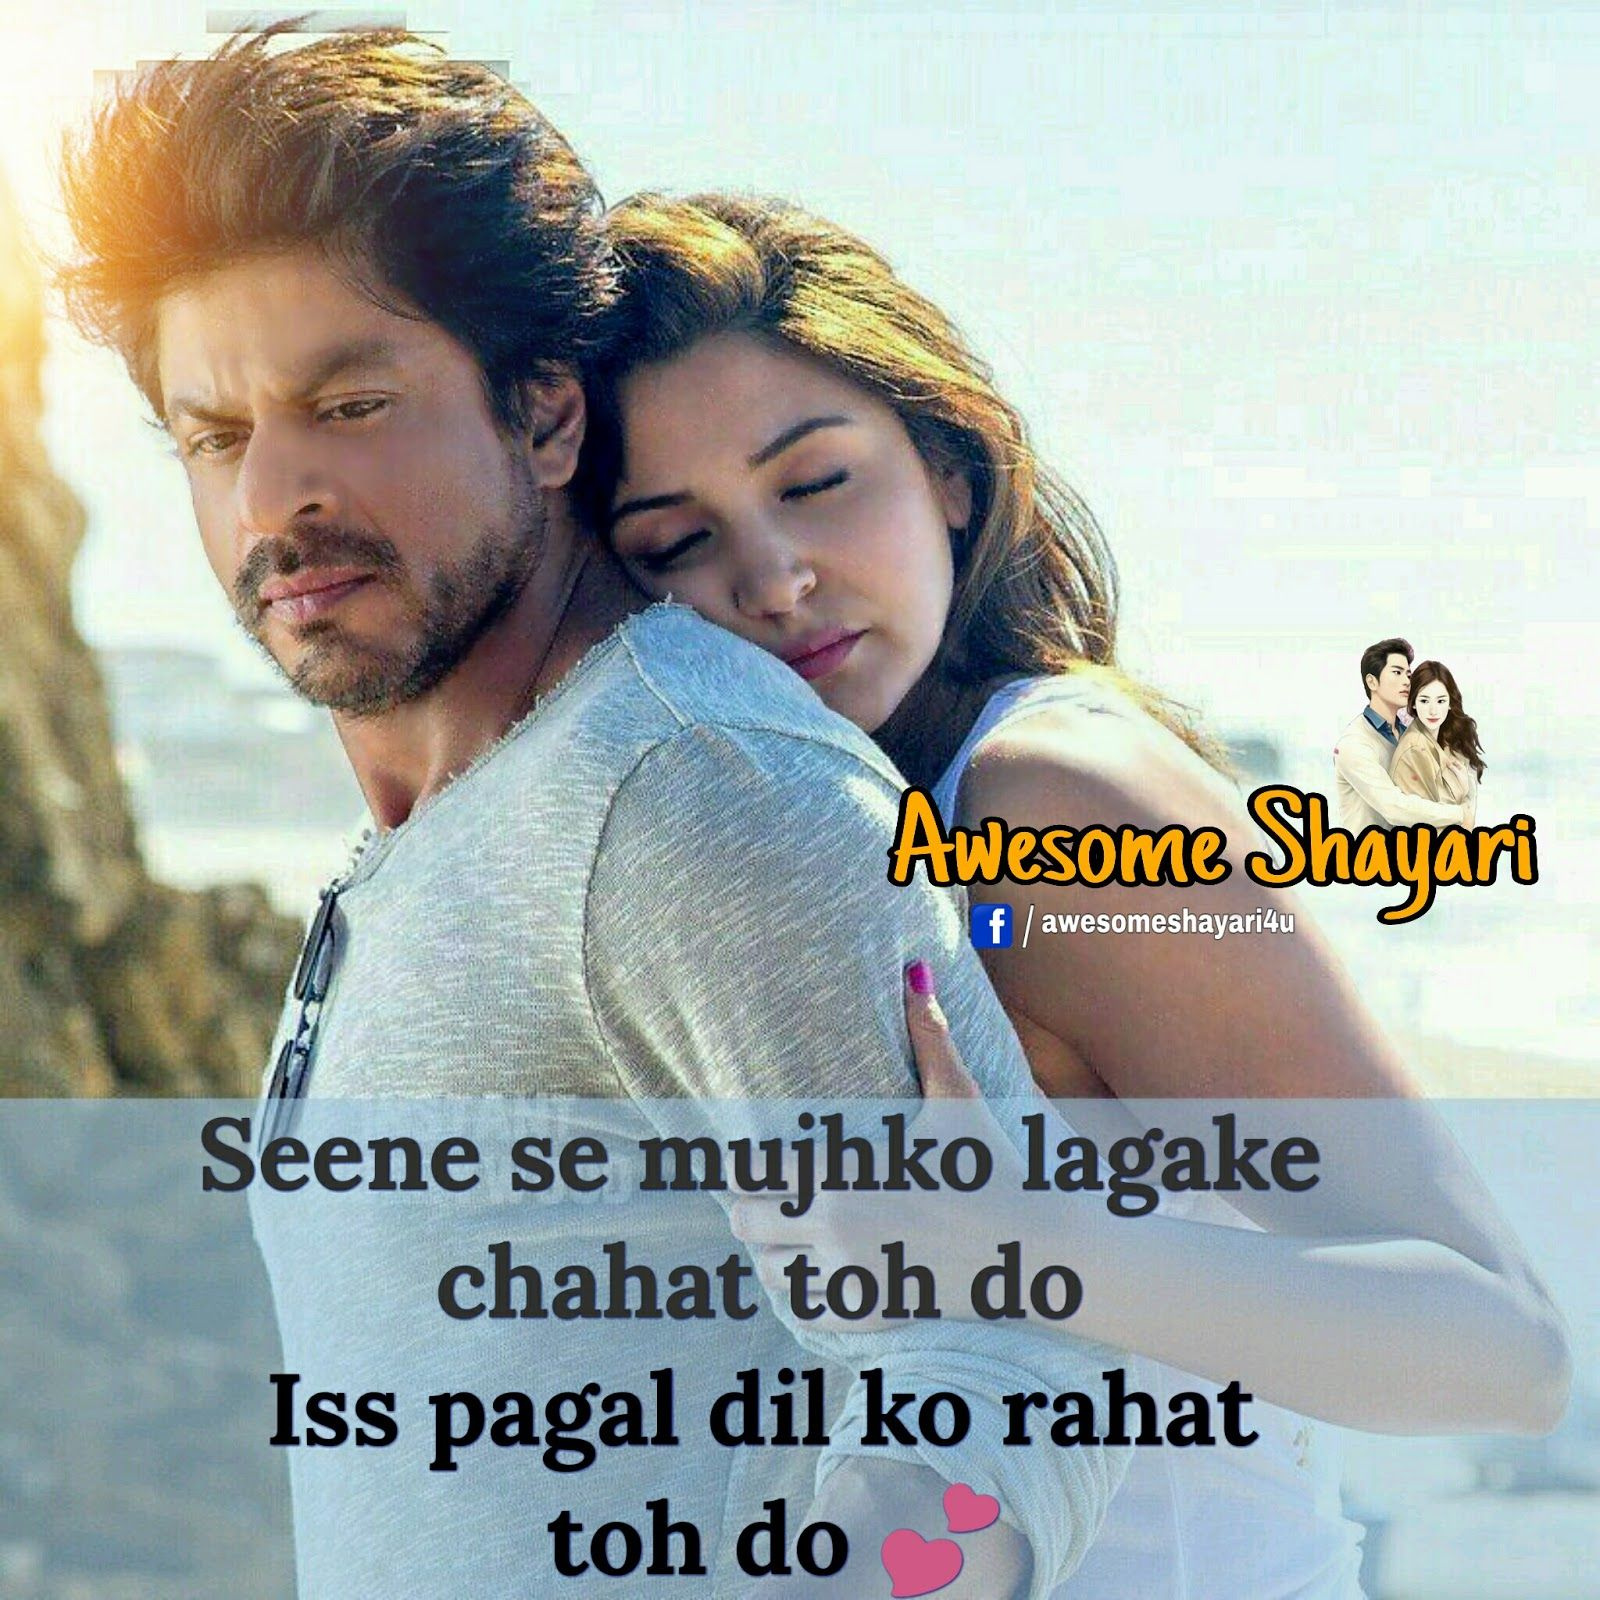 Awesome Shayari Images Love Shayari Heart Touching Shayari Hindi